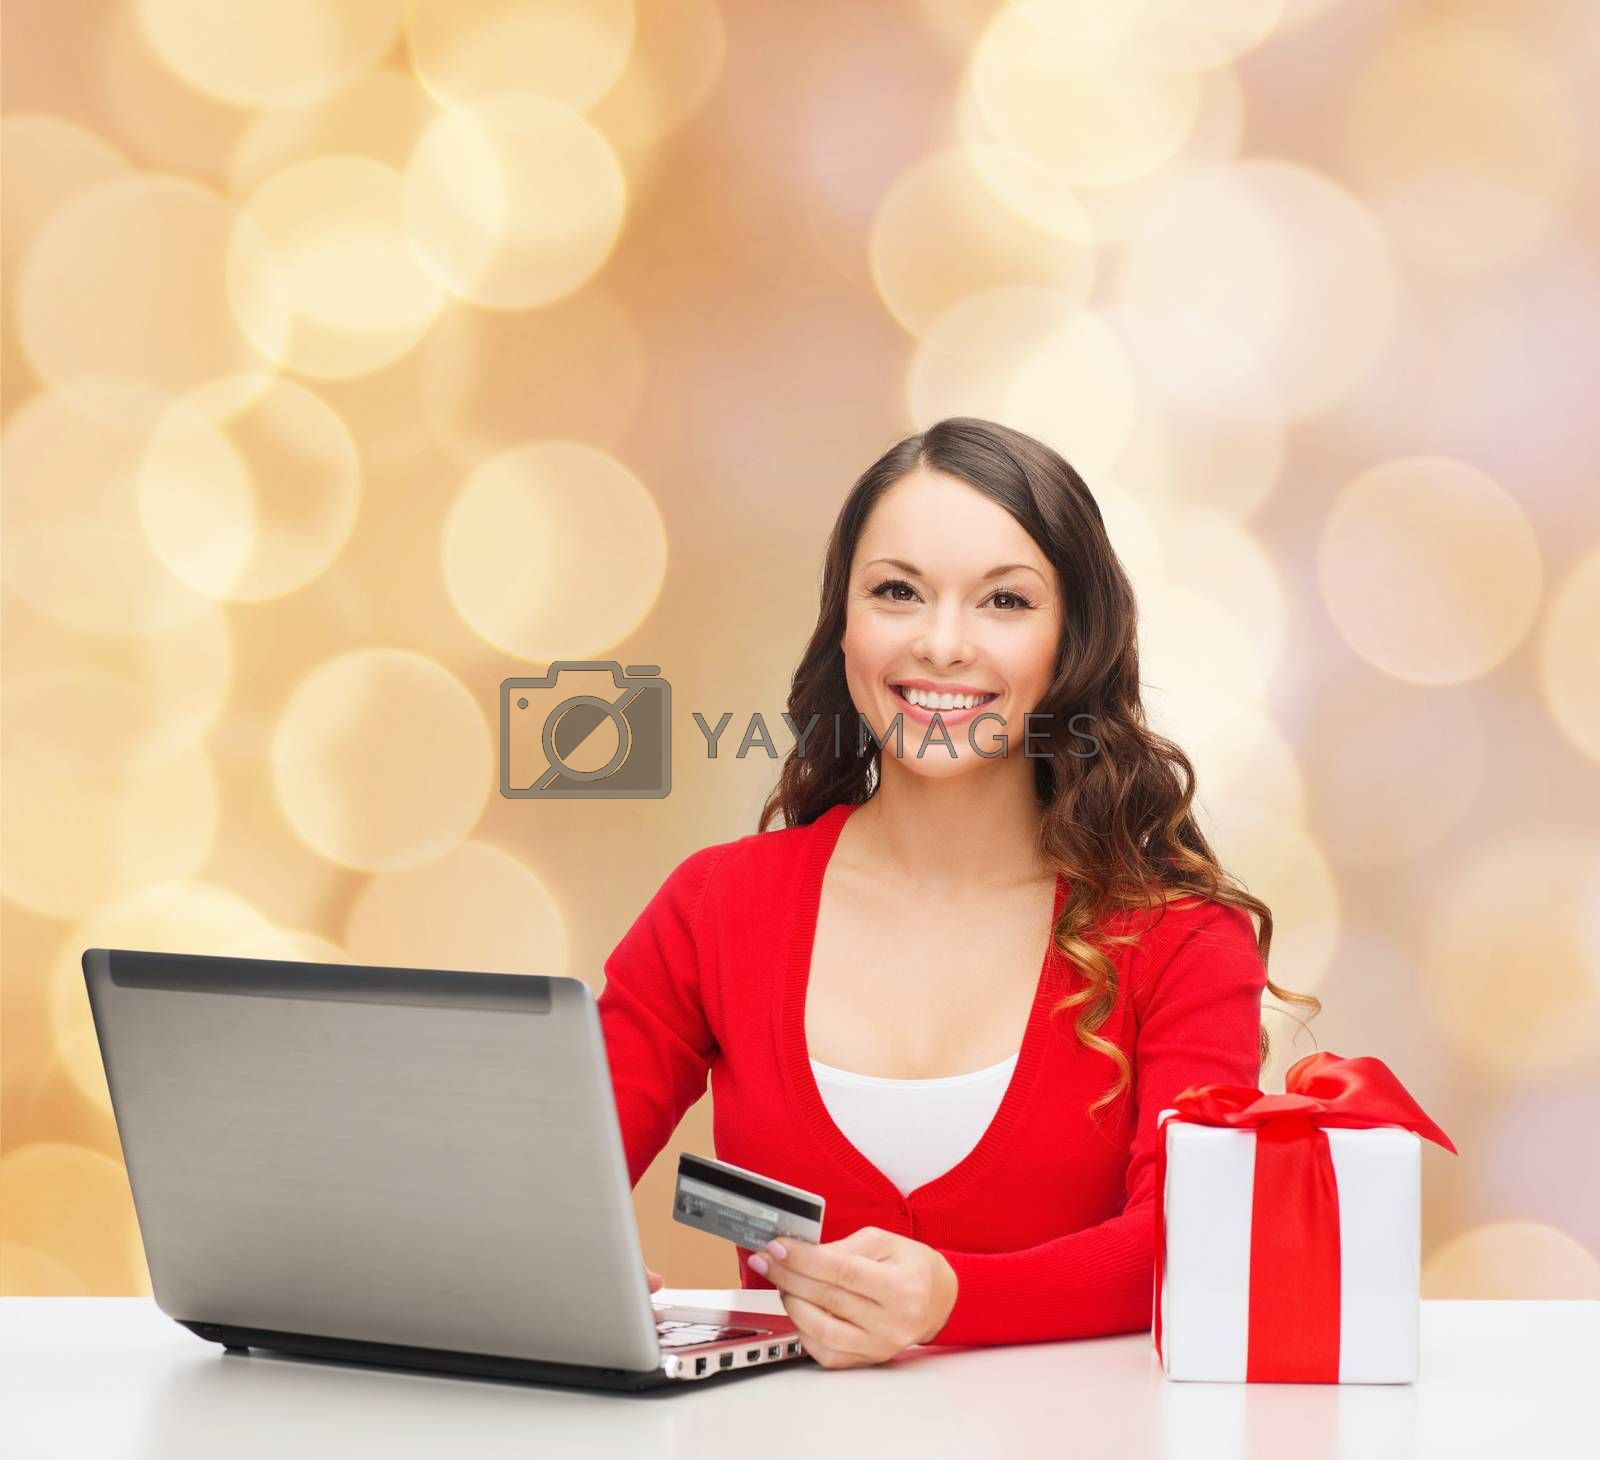 smiling woman with credit card and laptop by dolgachov